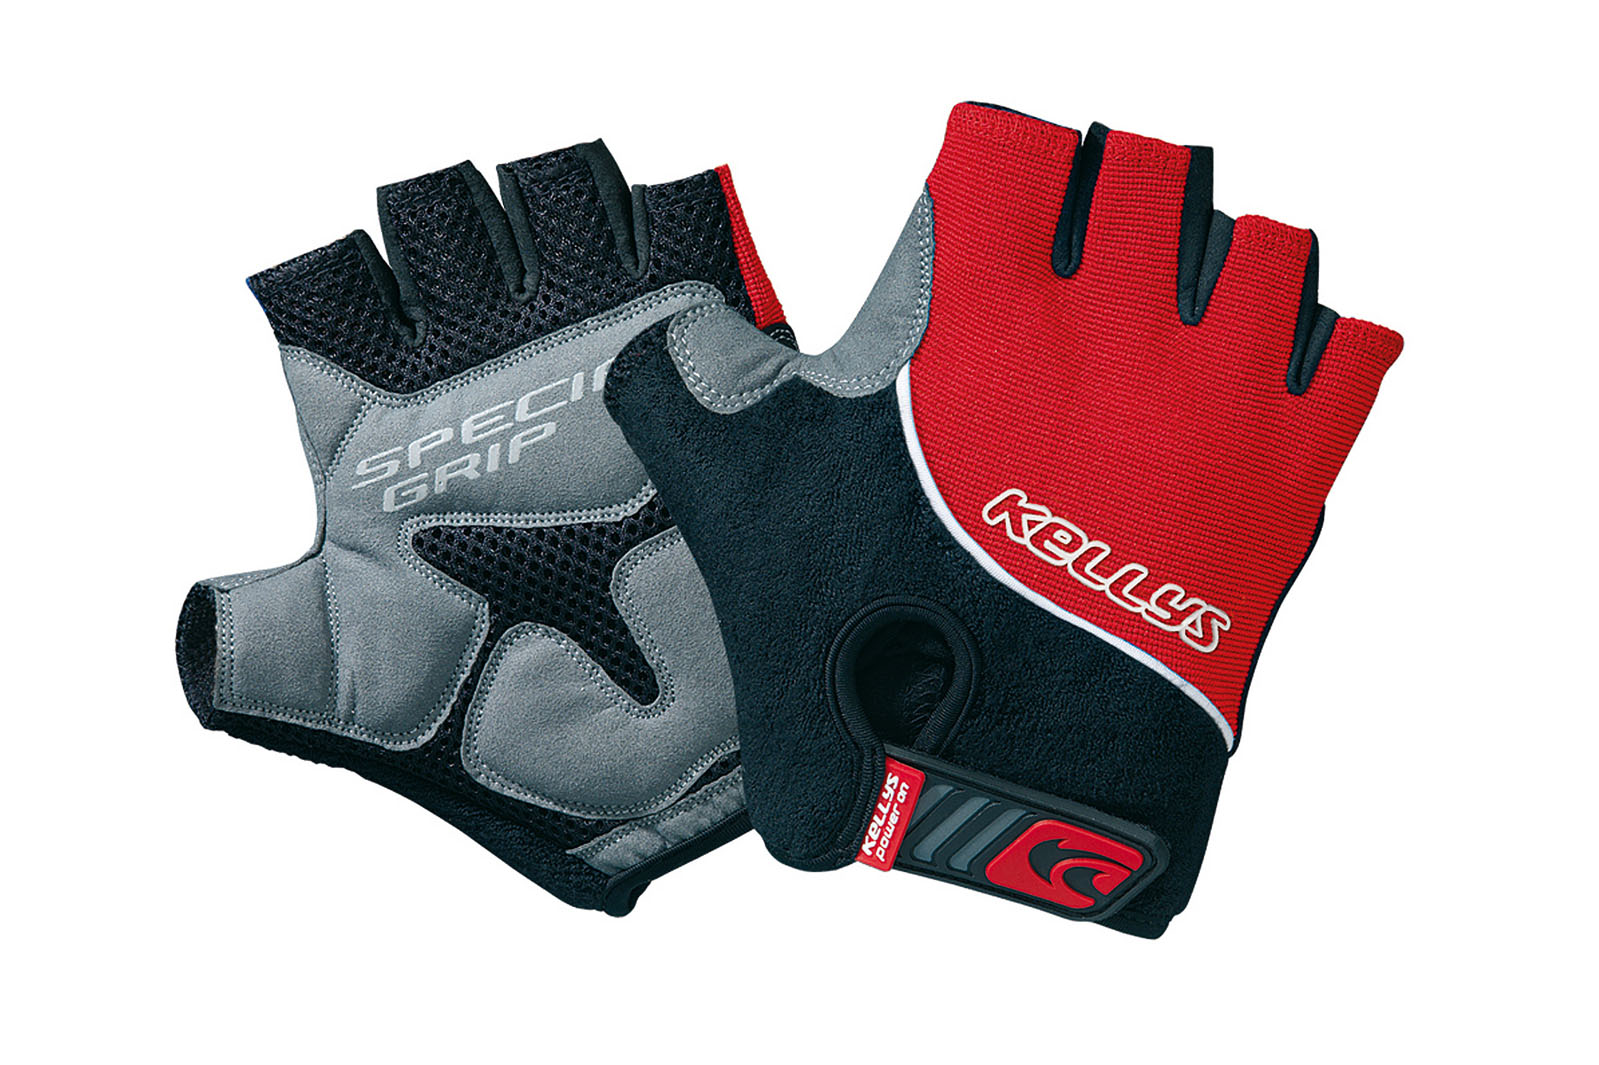 Handschuhe RACE rot XL - Mile-Multisport